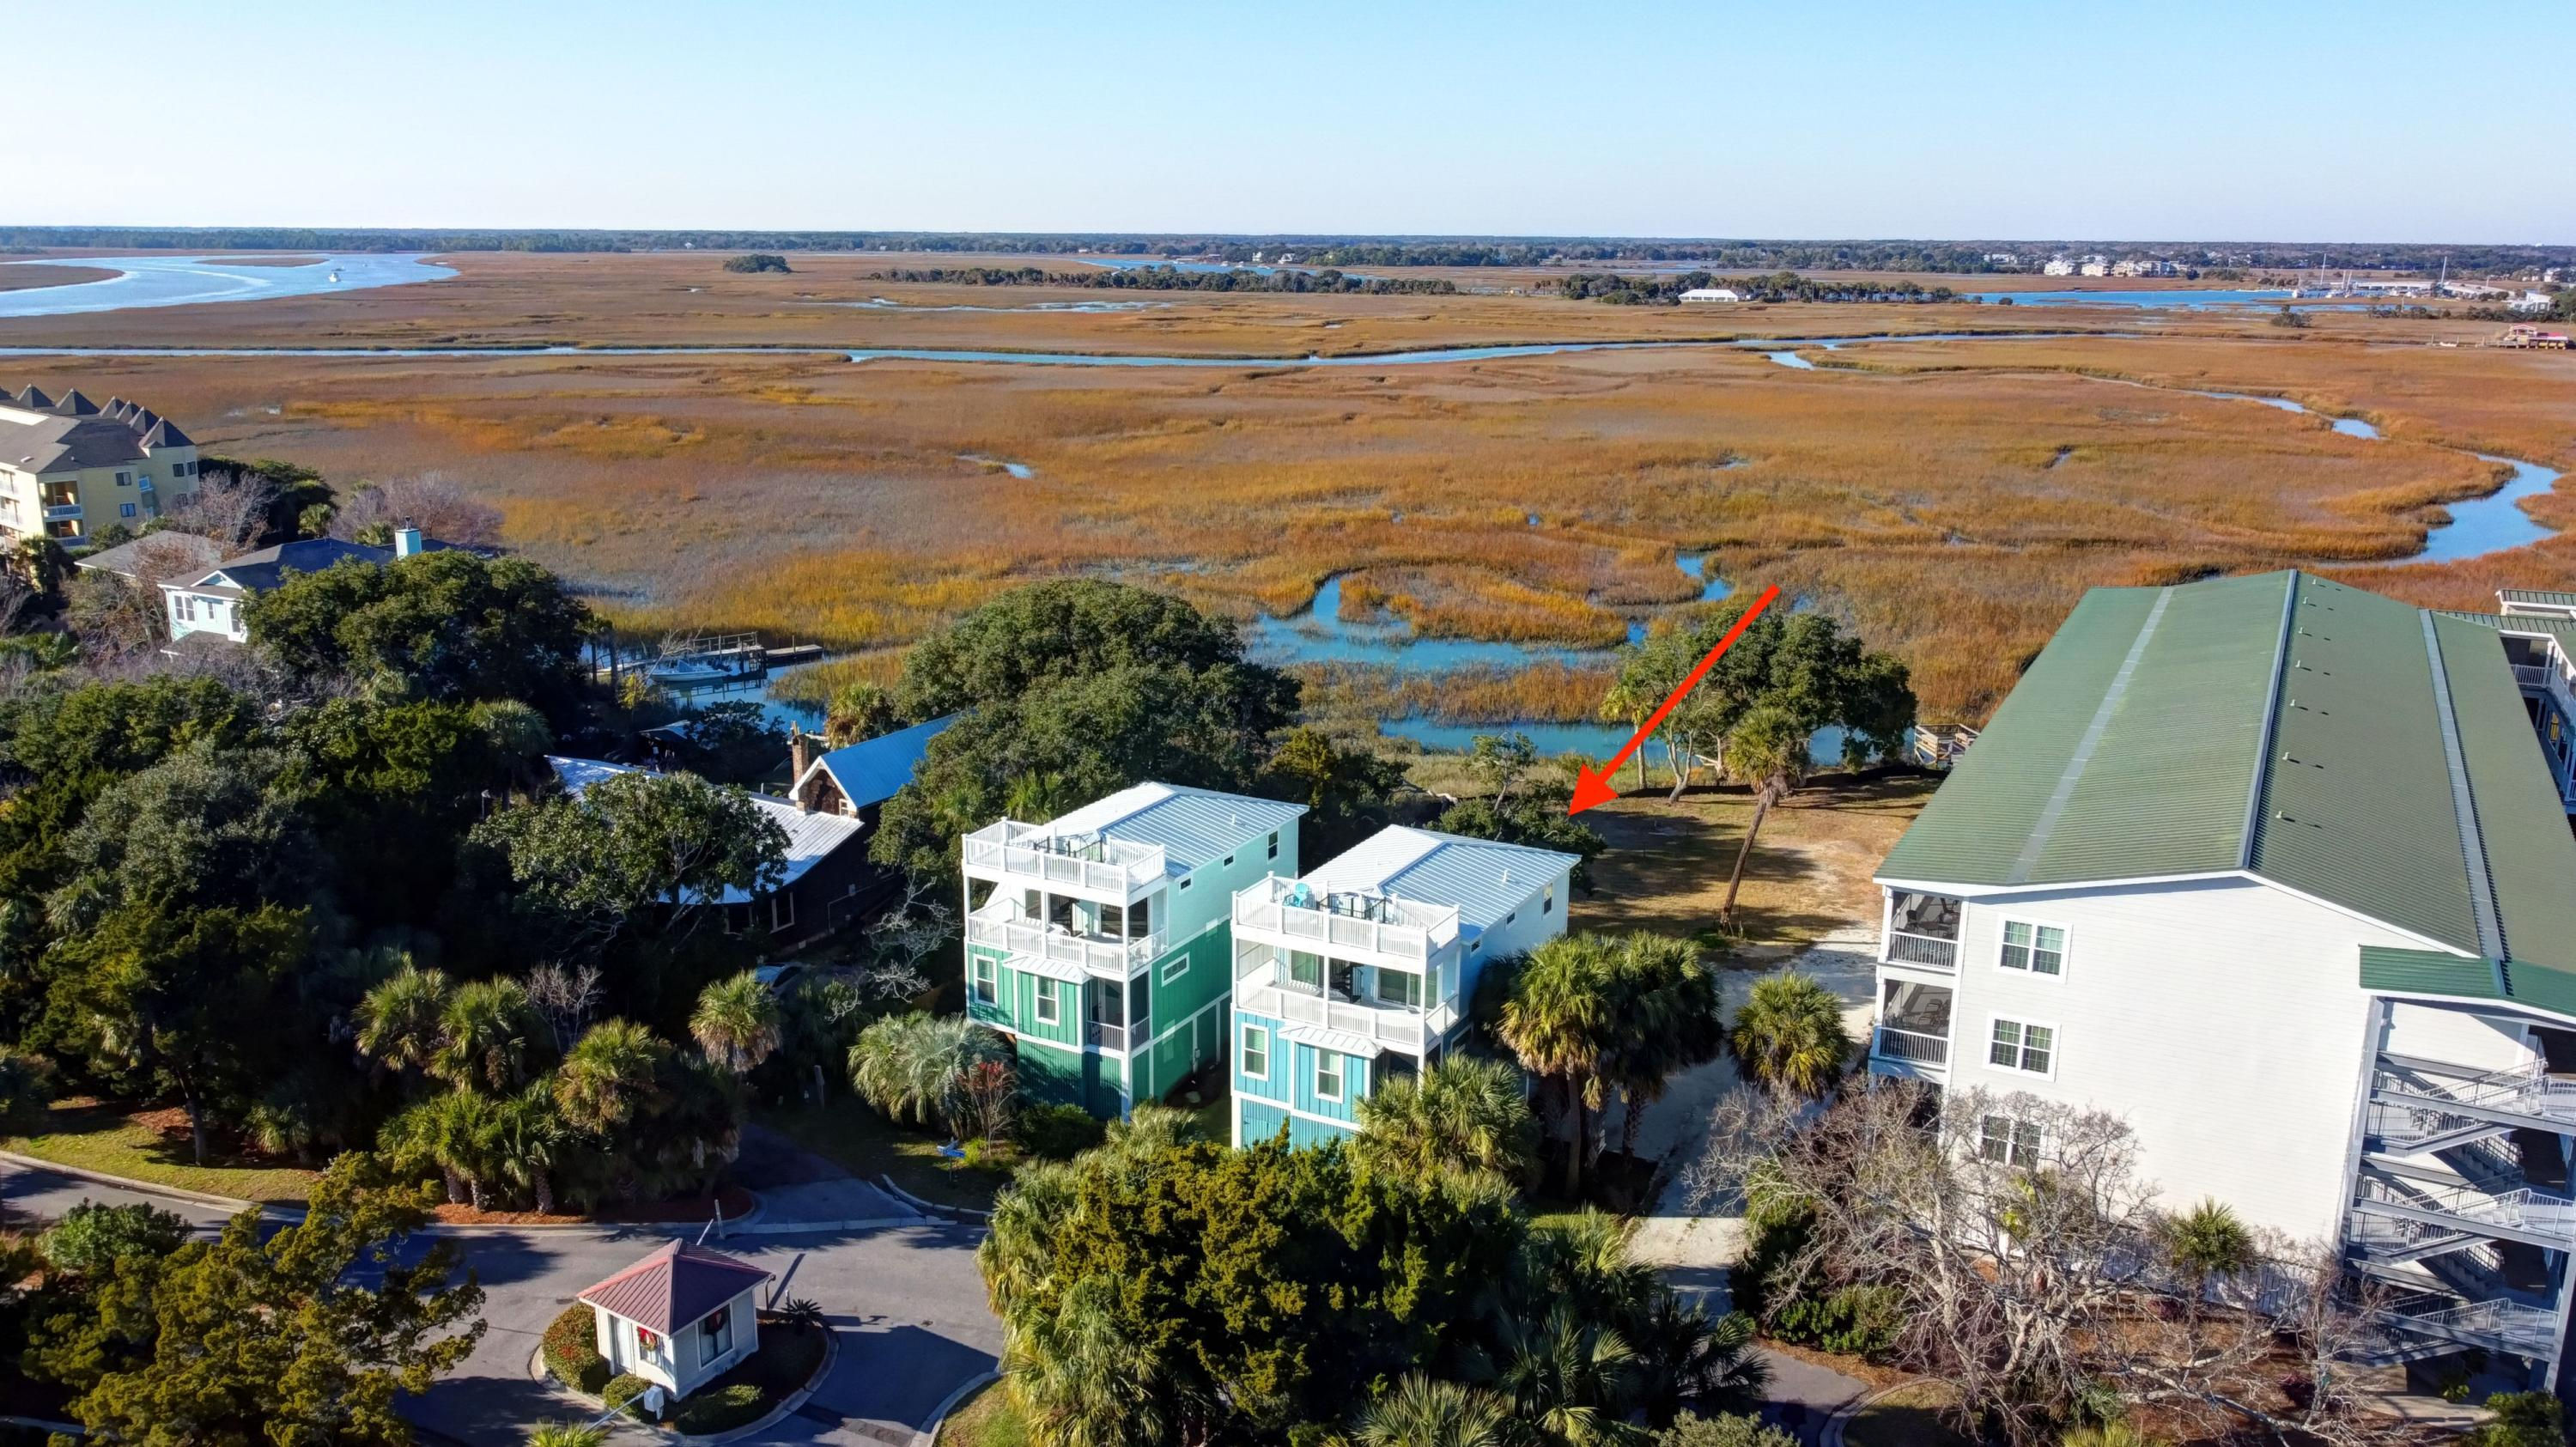 Mariners Cay Homes For Sale - 1002 Mariners Cay, Folly Beach, SC - 3